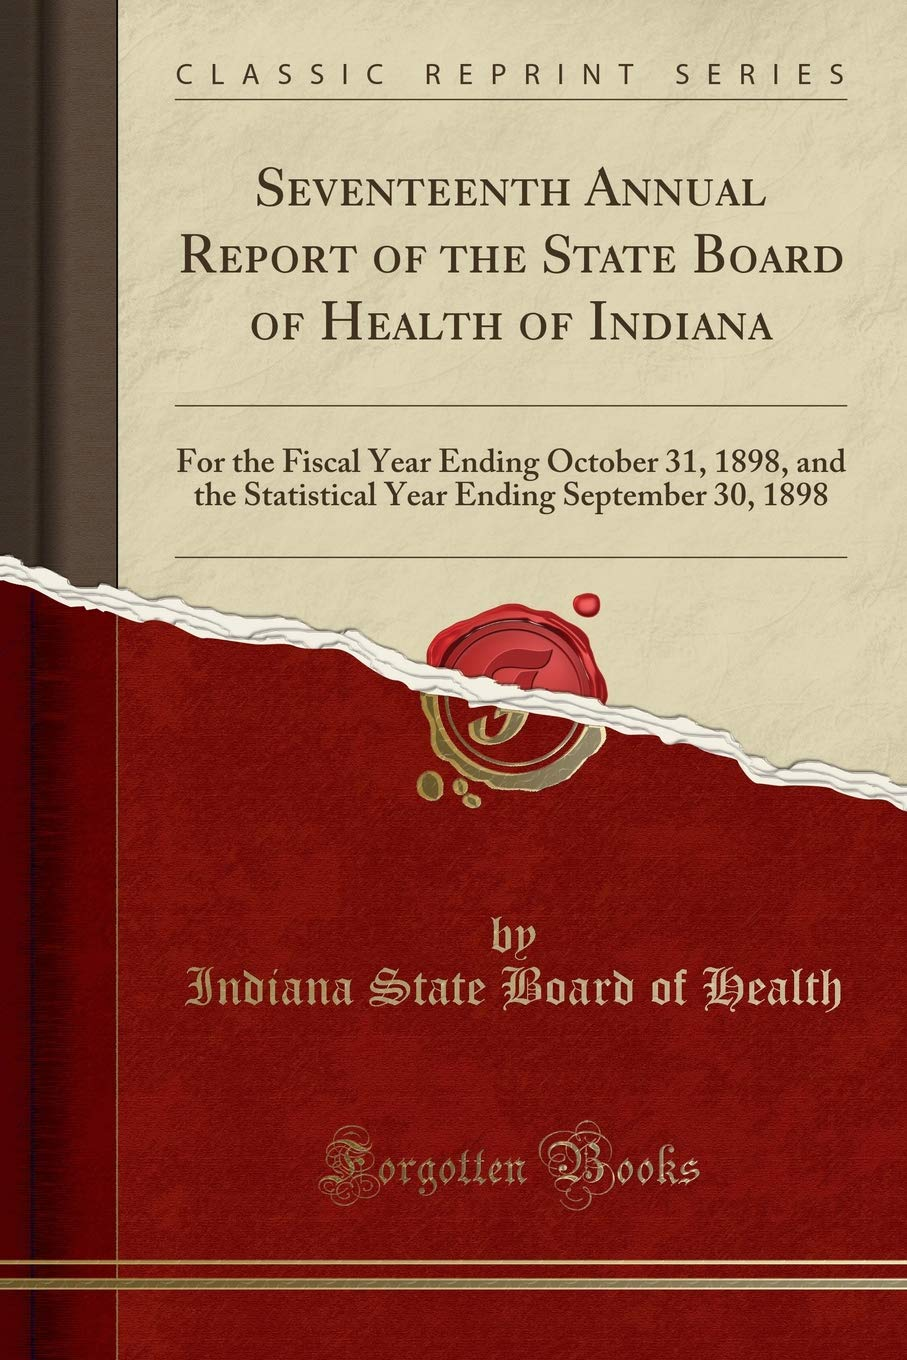 Seventeenth Annual Report of the State Board of Health of Indiana: For the Fiscal Year Ending October 31, 1898, and the Statistical Year Ending September 30, 1898 (Classic Reprint) PDF